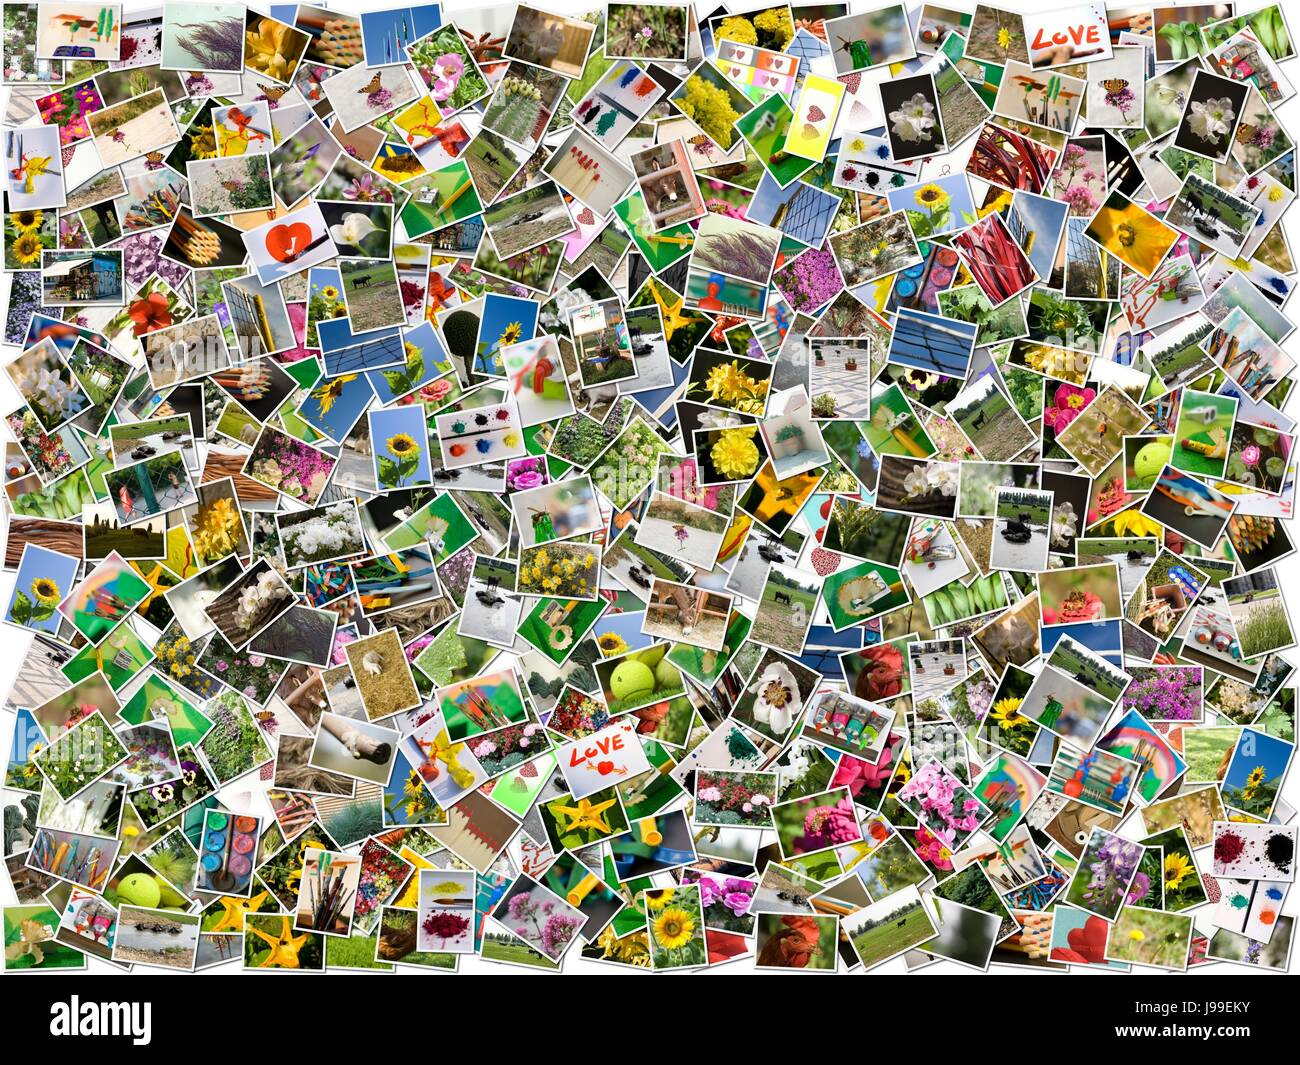 collage, photos, mosaics, mosaic, postcards, images, many, montage, assemblage, - Stock Image